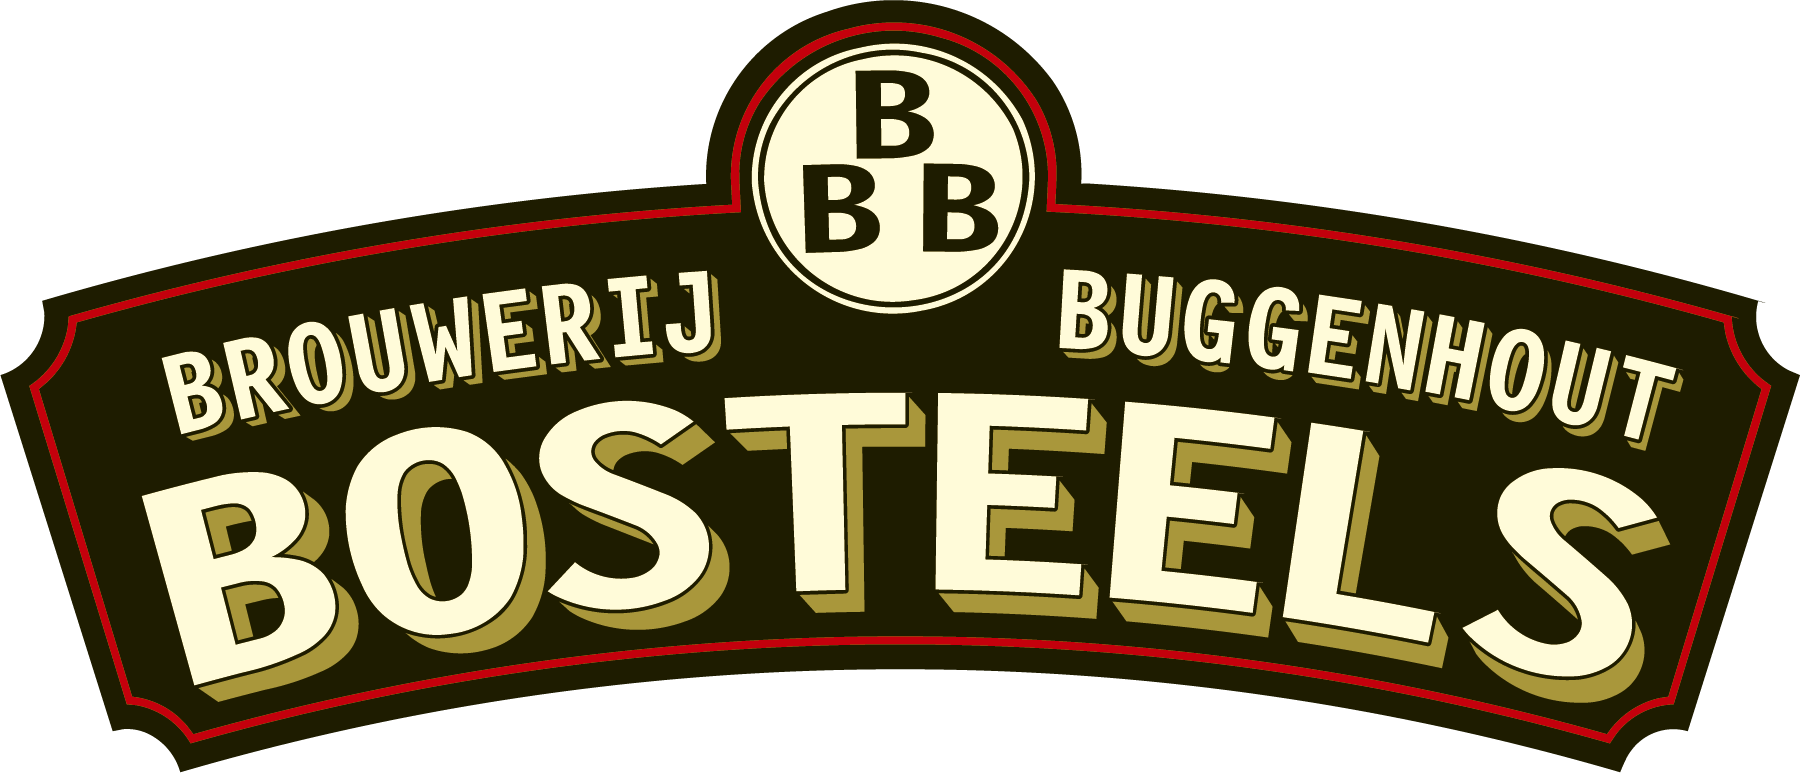 BRASSERIE BOSTEEL'S